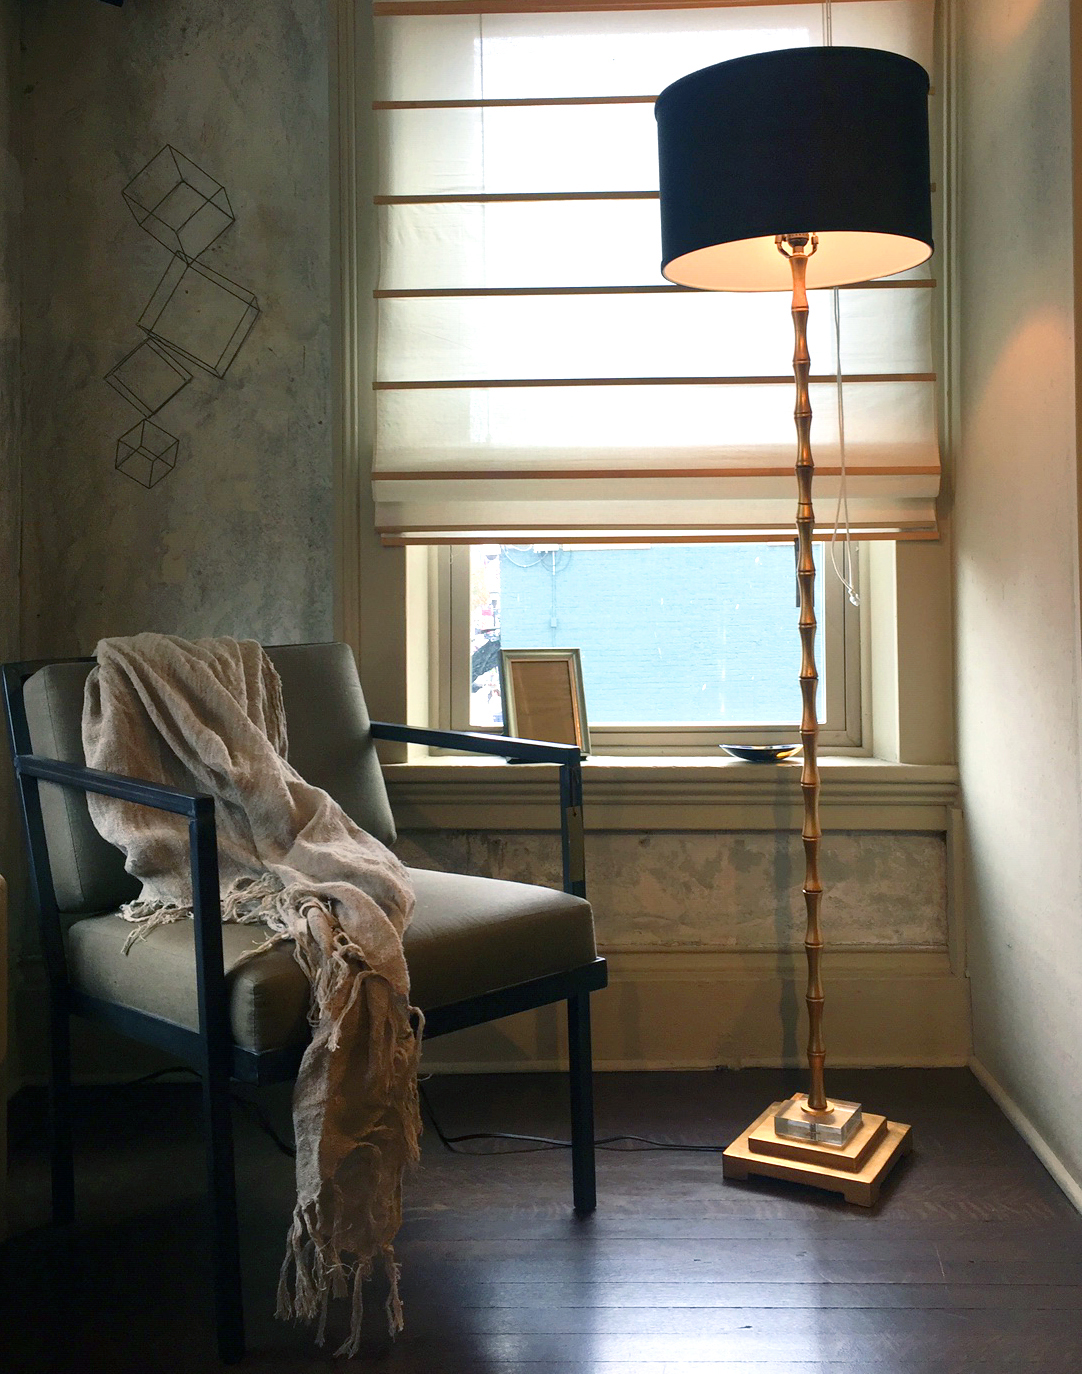 "Edgar Floor Lamp  $385   Gold Leaf and Linen 65""H Shade 10""H x 16""Dia   Healy Chair  $1,475 Linen and Steel 28""D x 22.5W x 31""H - 6 weeks Made in Maine   Peasant Throw  $88 Natural Fringe Pre-Washed Linen 50"" x 70""   Livorna Frame  $42 Silver 5 x 7 Italy/USA   Ranch Horn Oval Bowl  $22 Cow Horn Made in the Phillipines   Wire Cube Sculpture  $30 Make Your Own Art Table or Hanging."